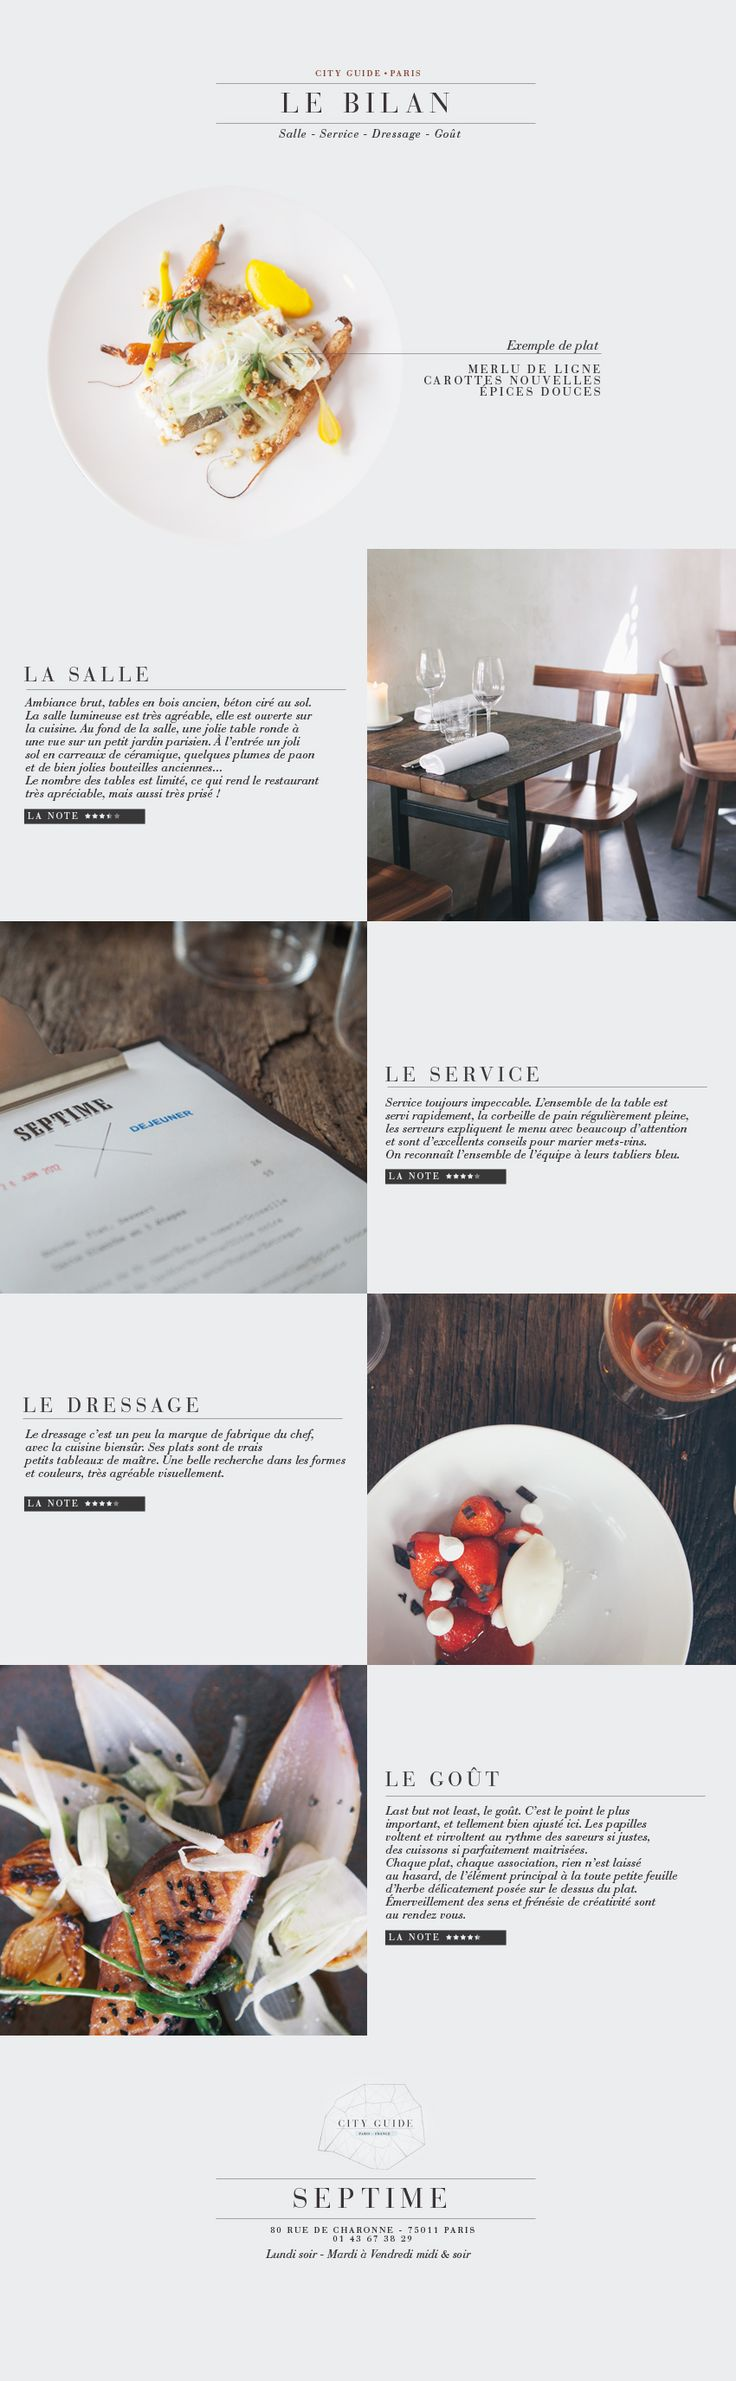 Restaurant Paris || Weekly web design Inspiration for everyone! Introducing Moire Studios a thriving website and graphic design studio. Feel Free to Follow us @moirestudiosjkt to see more remarkable pins like this. Or visit our website www.moirestudiosjkt.com to learn more about us. #WebDesign #WebsiteInspiration #WebDesignInspiration ||